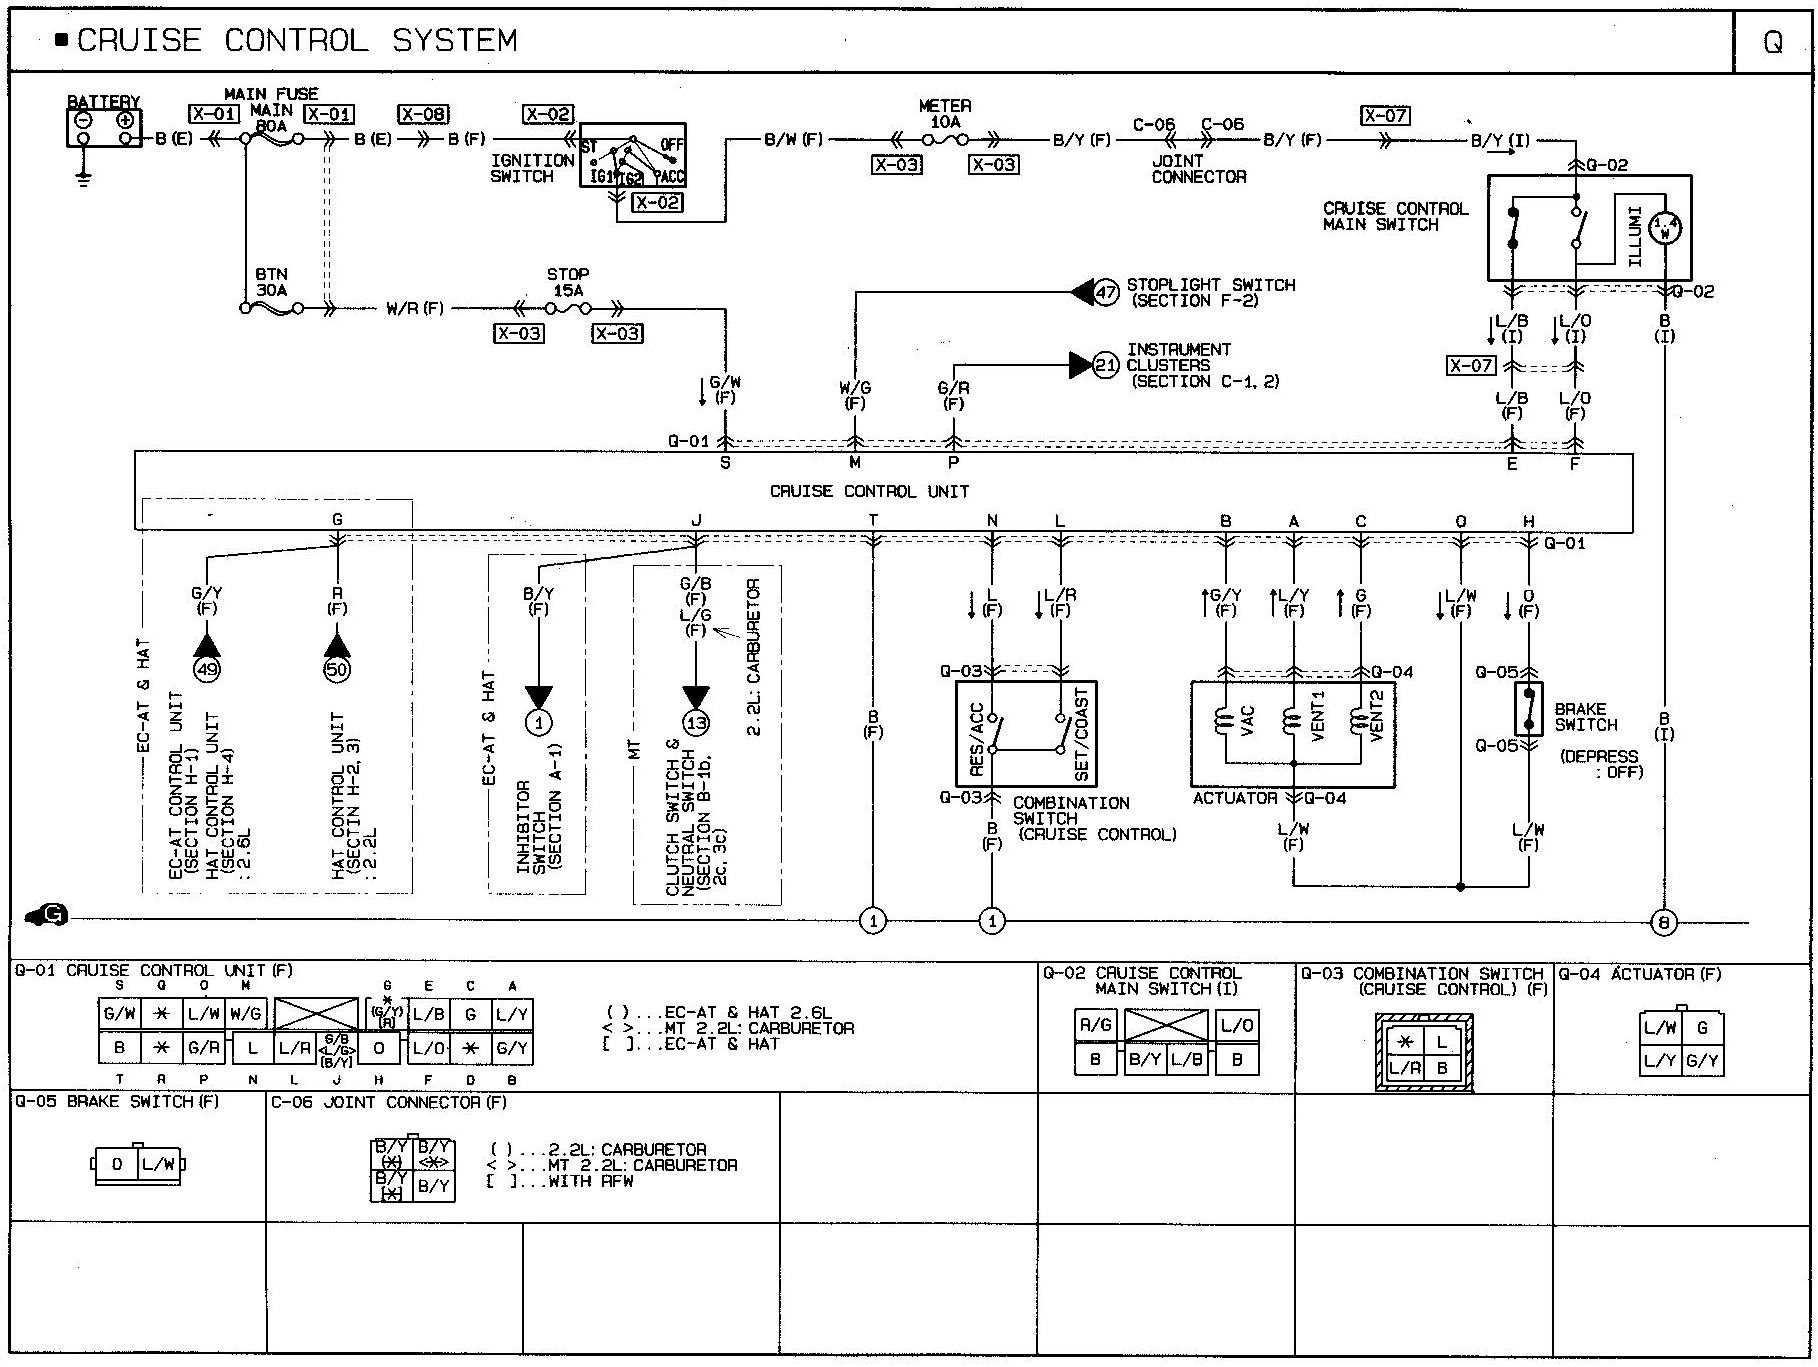 1989 Mazda B2600 Wiring Diagram